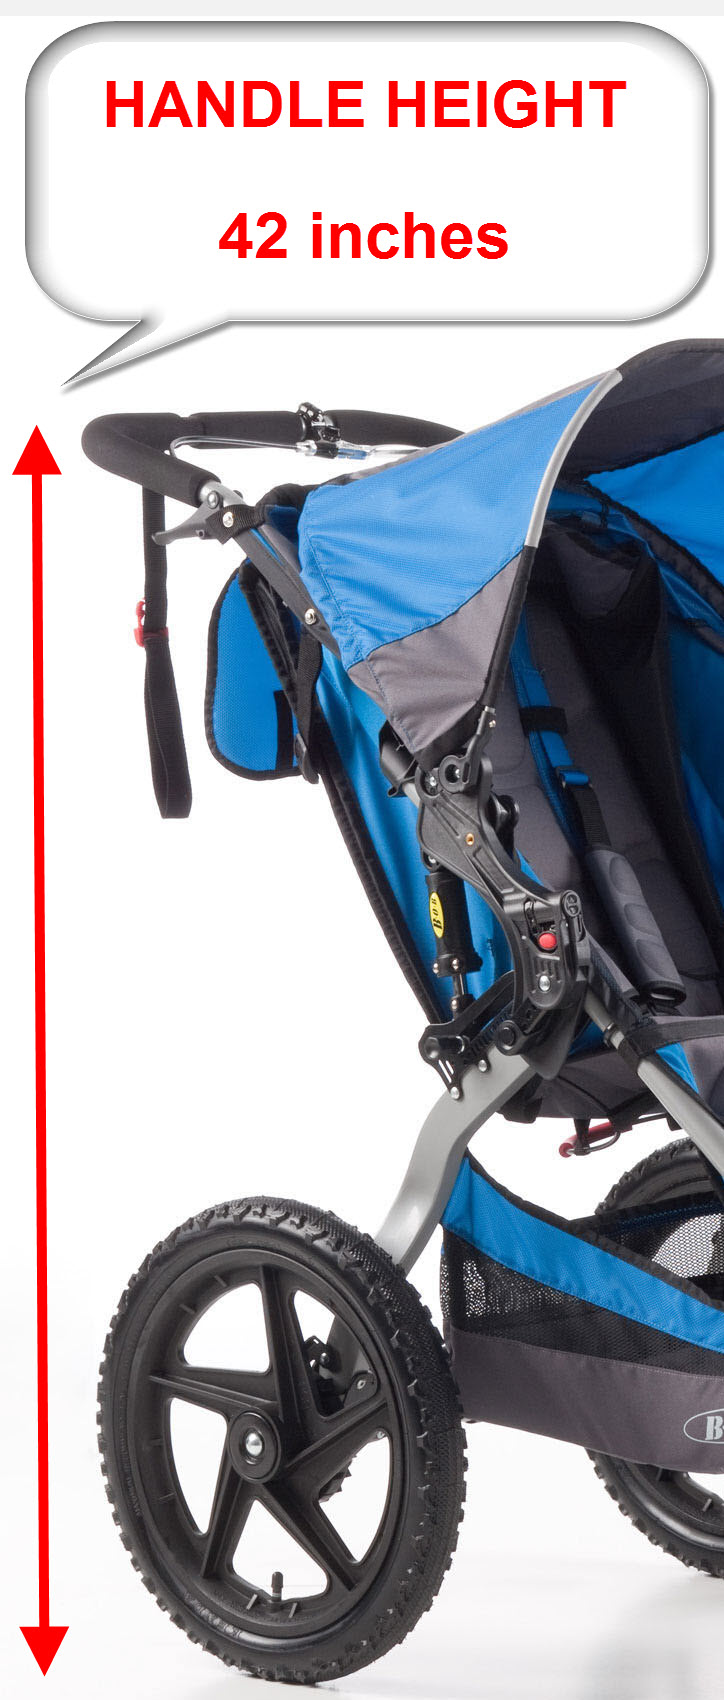 Bob-Sport-utility-stroller-handle-height